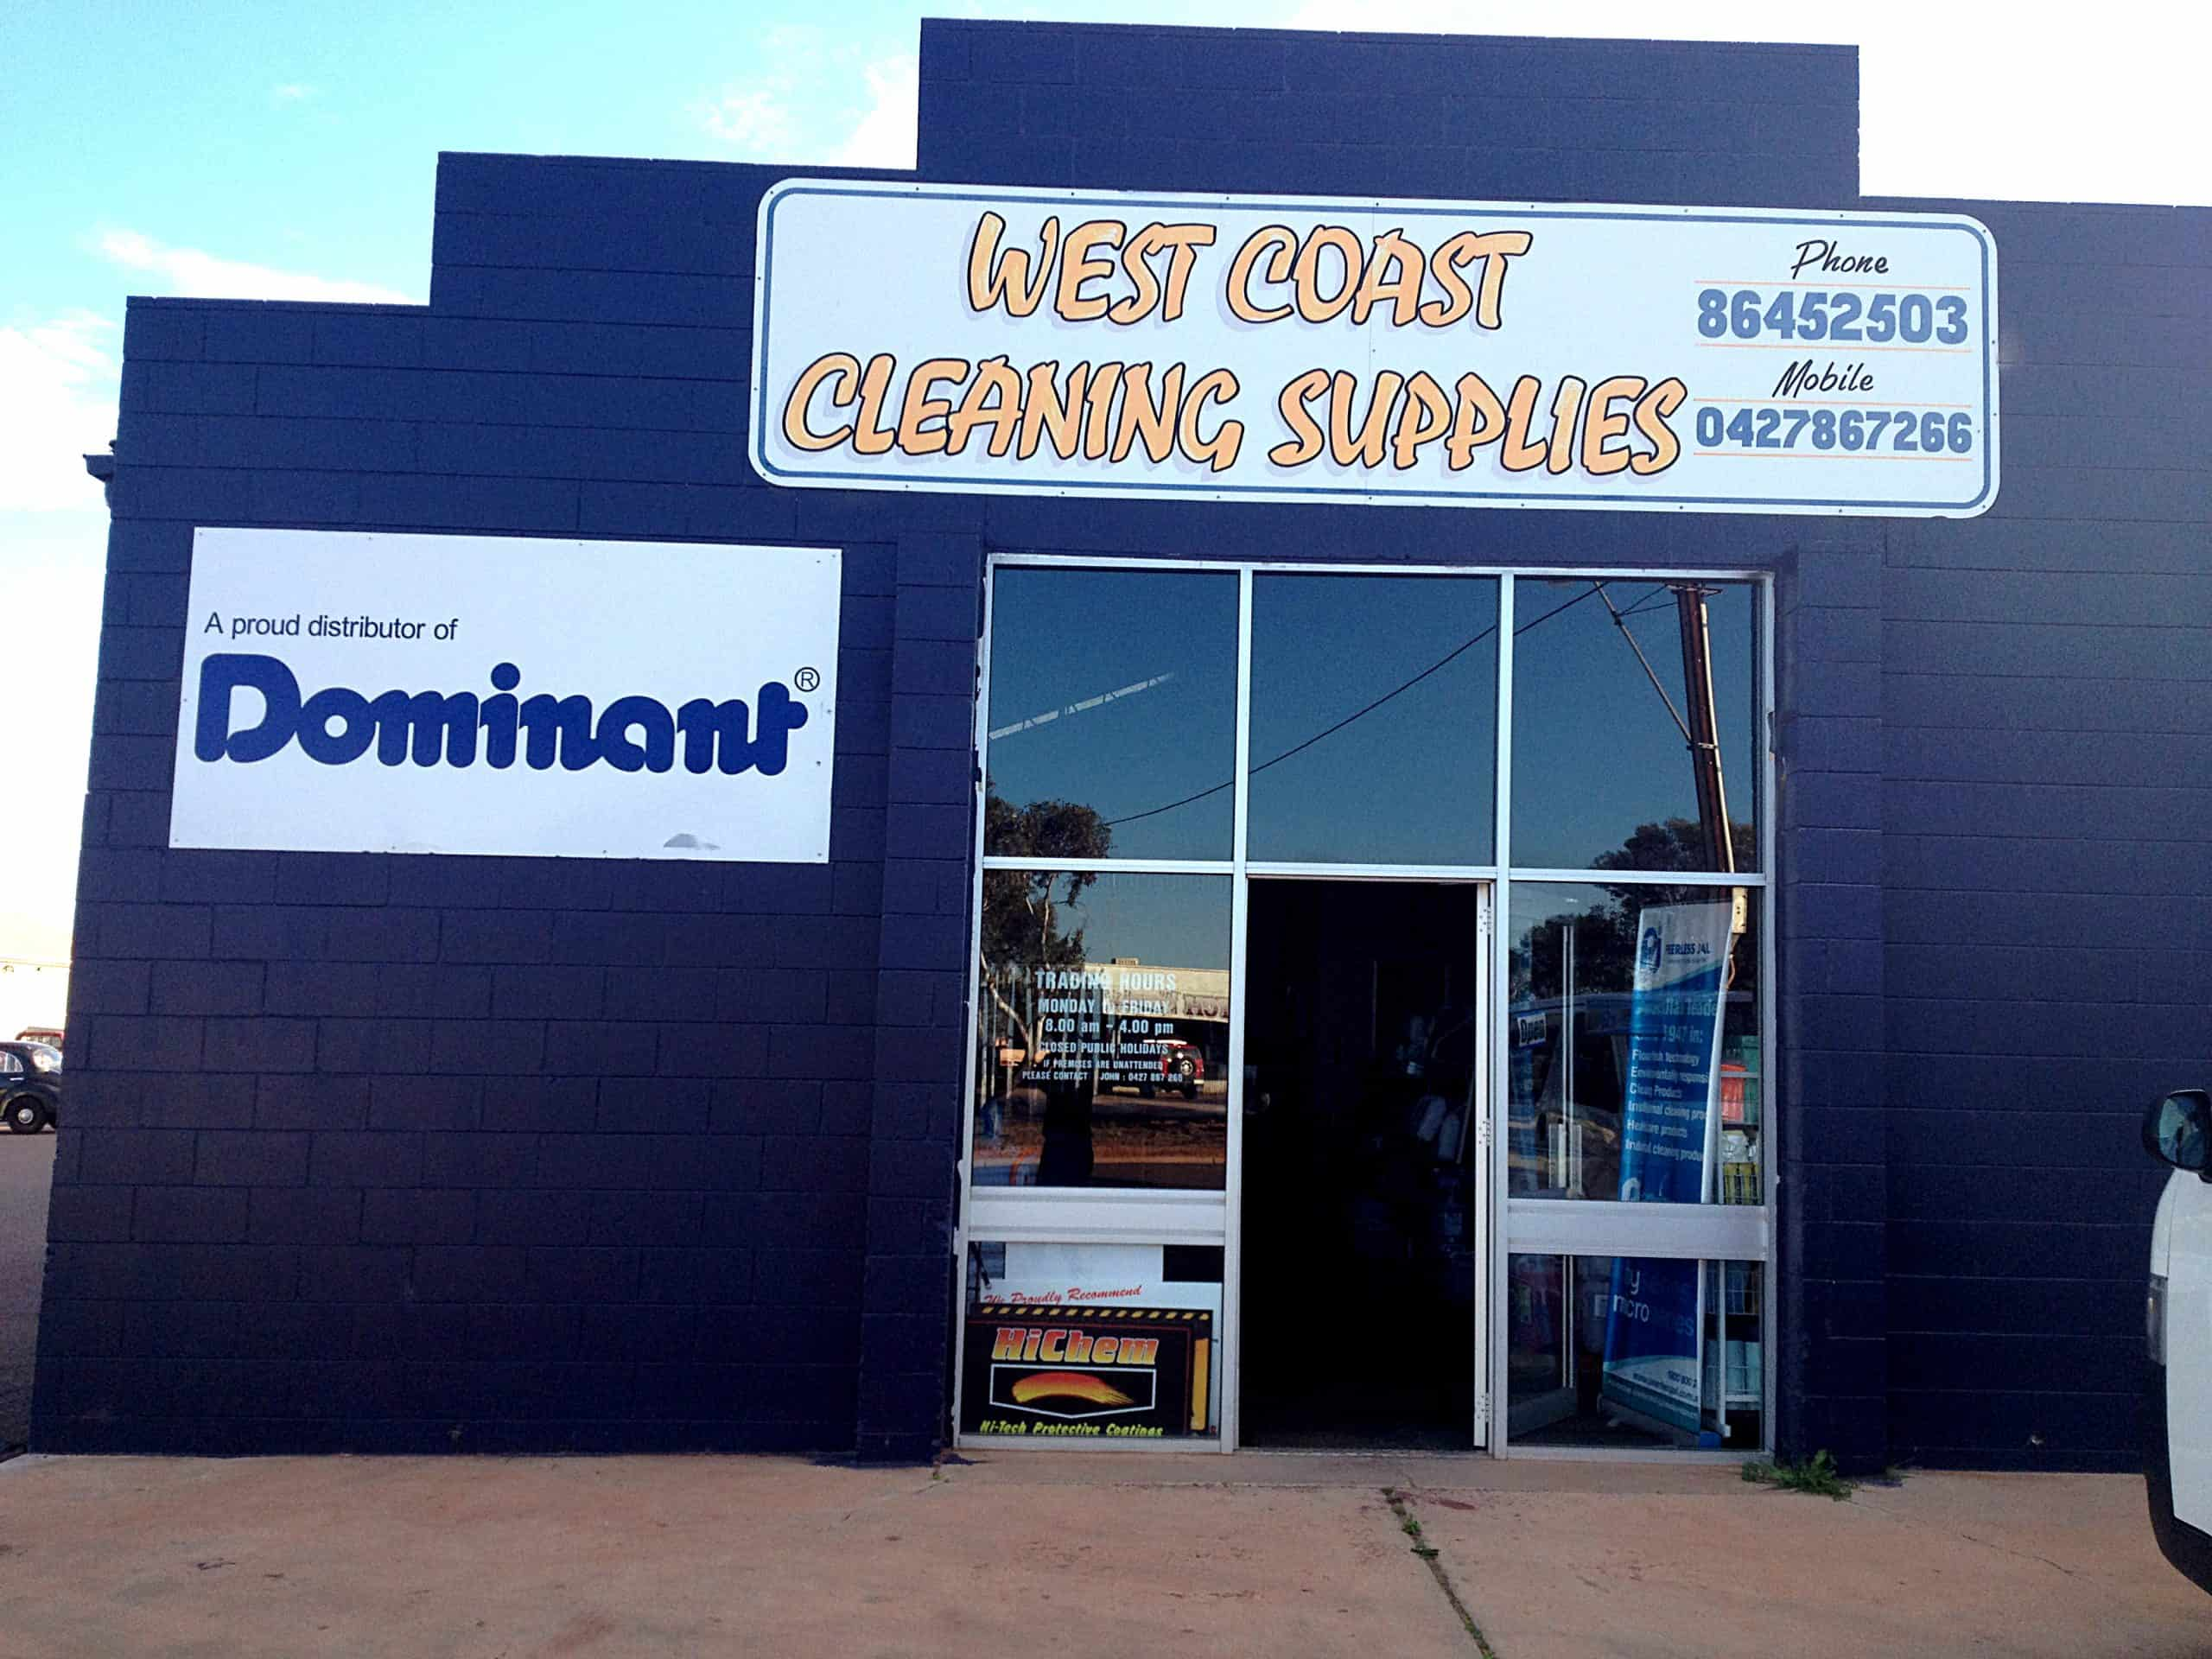 RapidClean Whyalla West Coast Cleaning Supplies